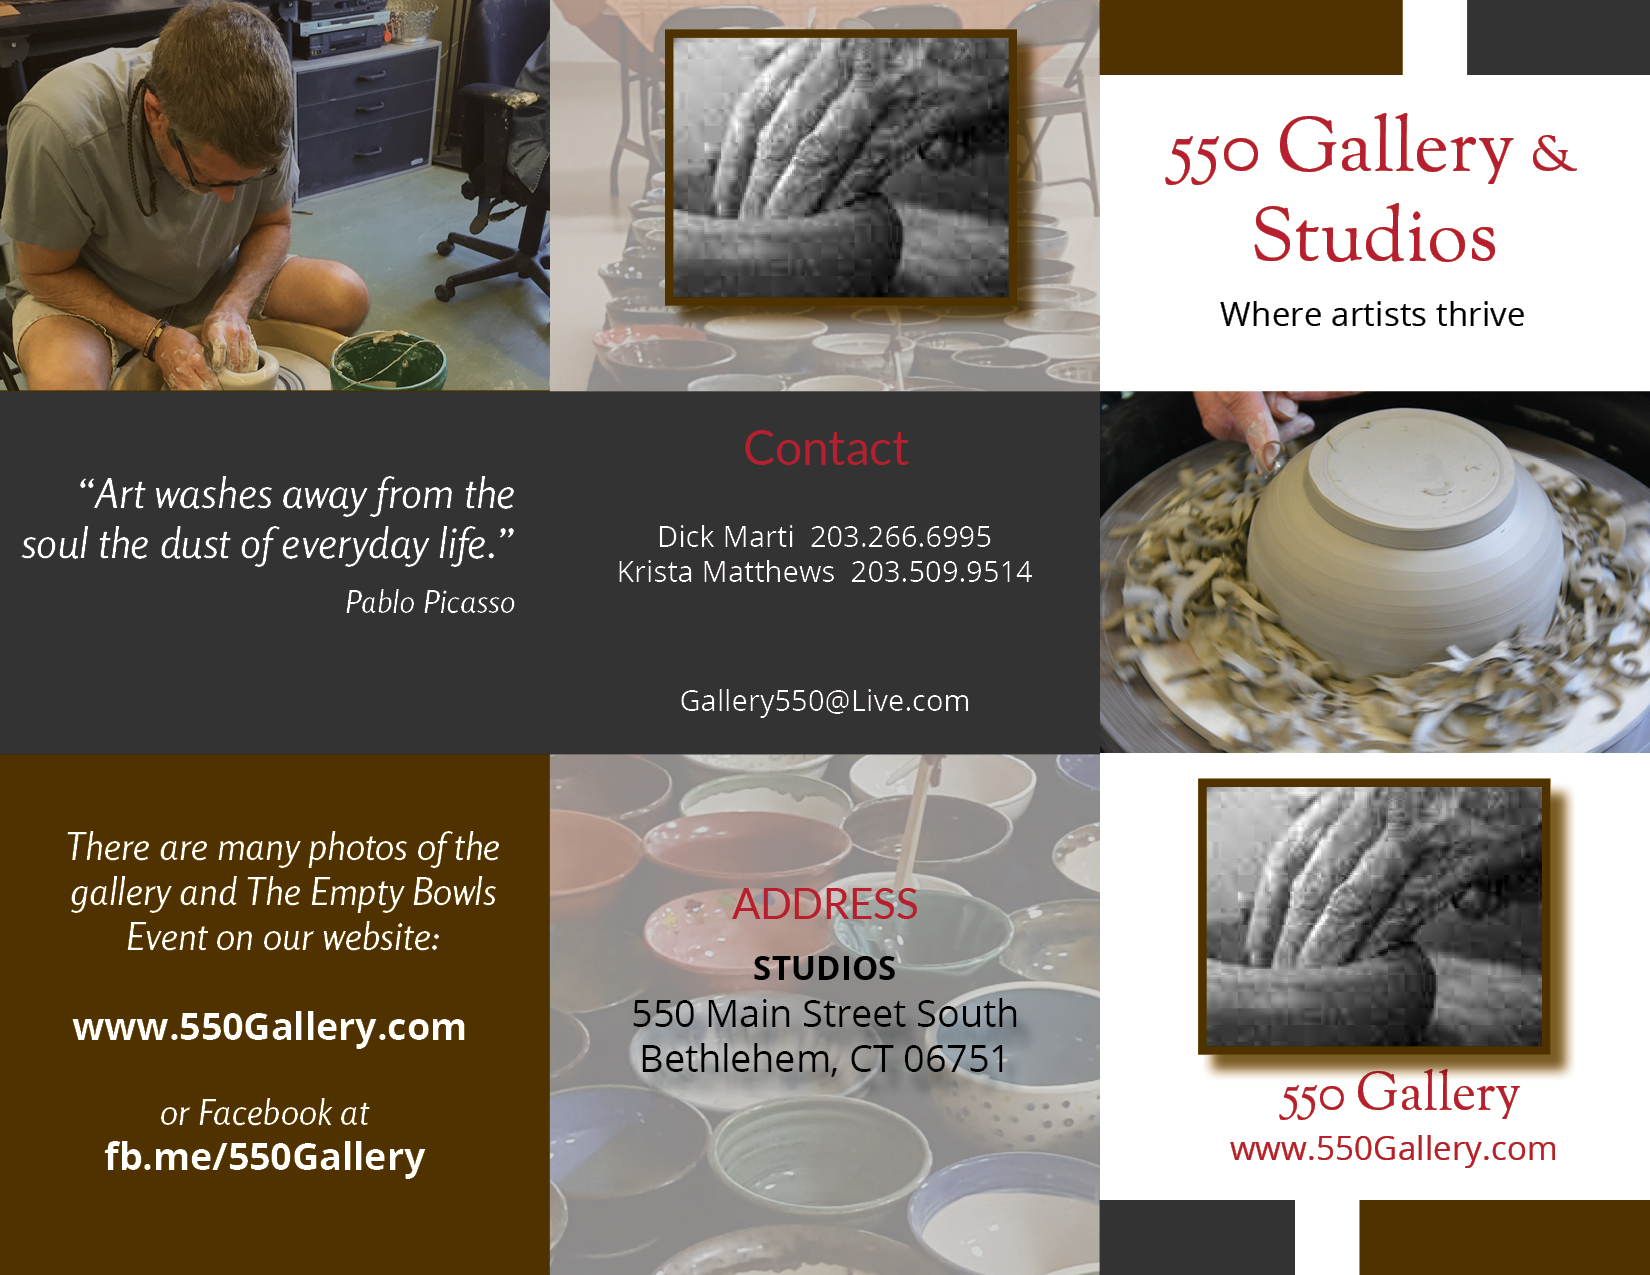 550 gallery-Final-to-print-both_Page_1